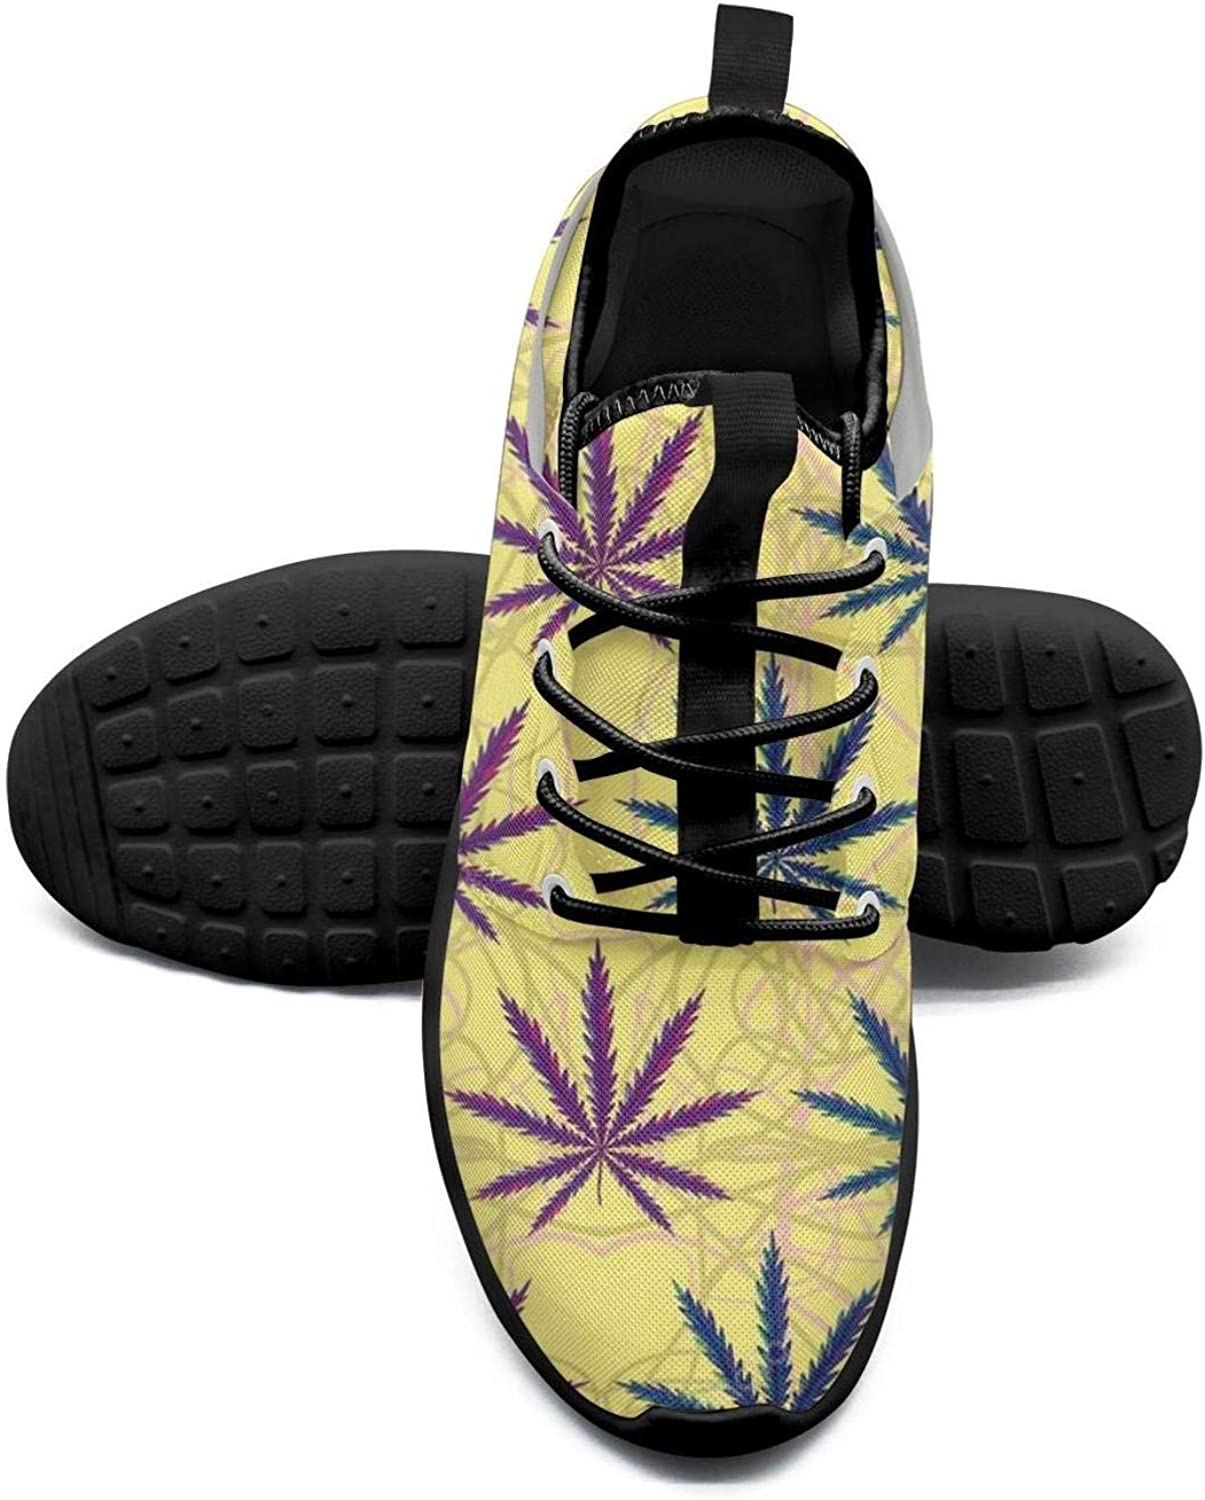 Gjsonmv Marijuana Cannabis Skulls mesh Lightweight shoes Women Non Slip Sports Trail Running Sneakers shoes